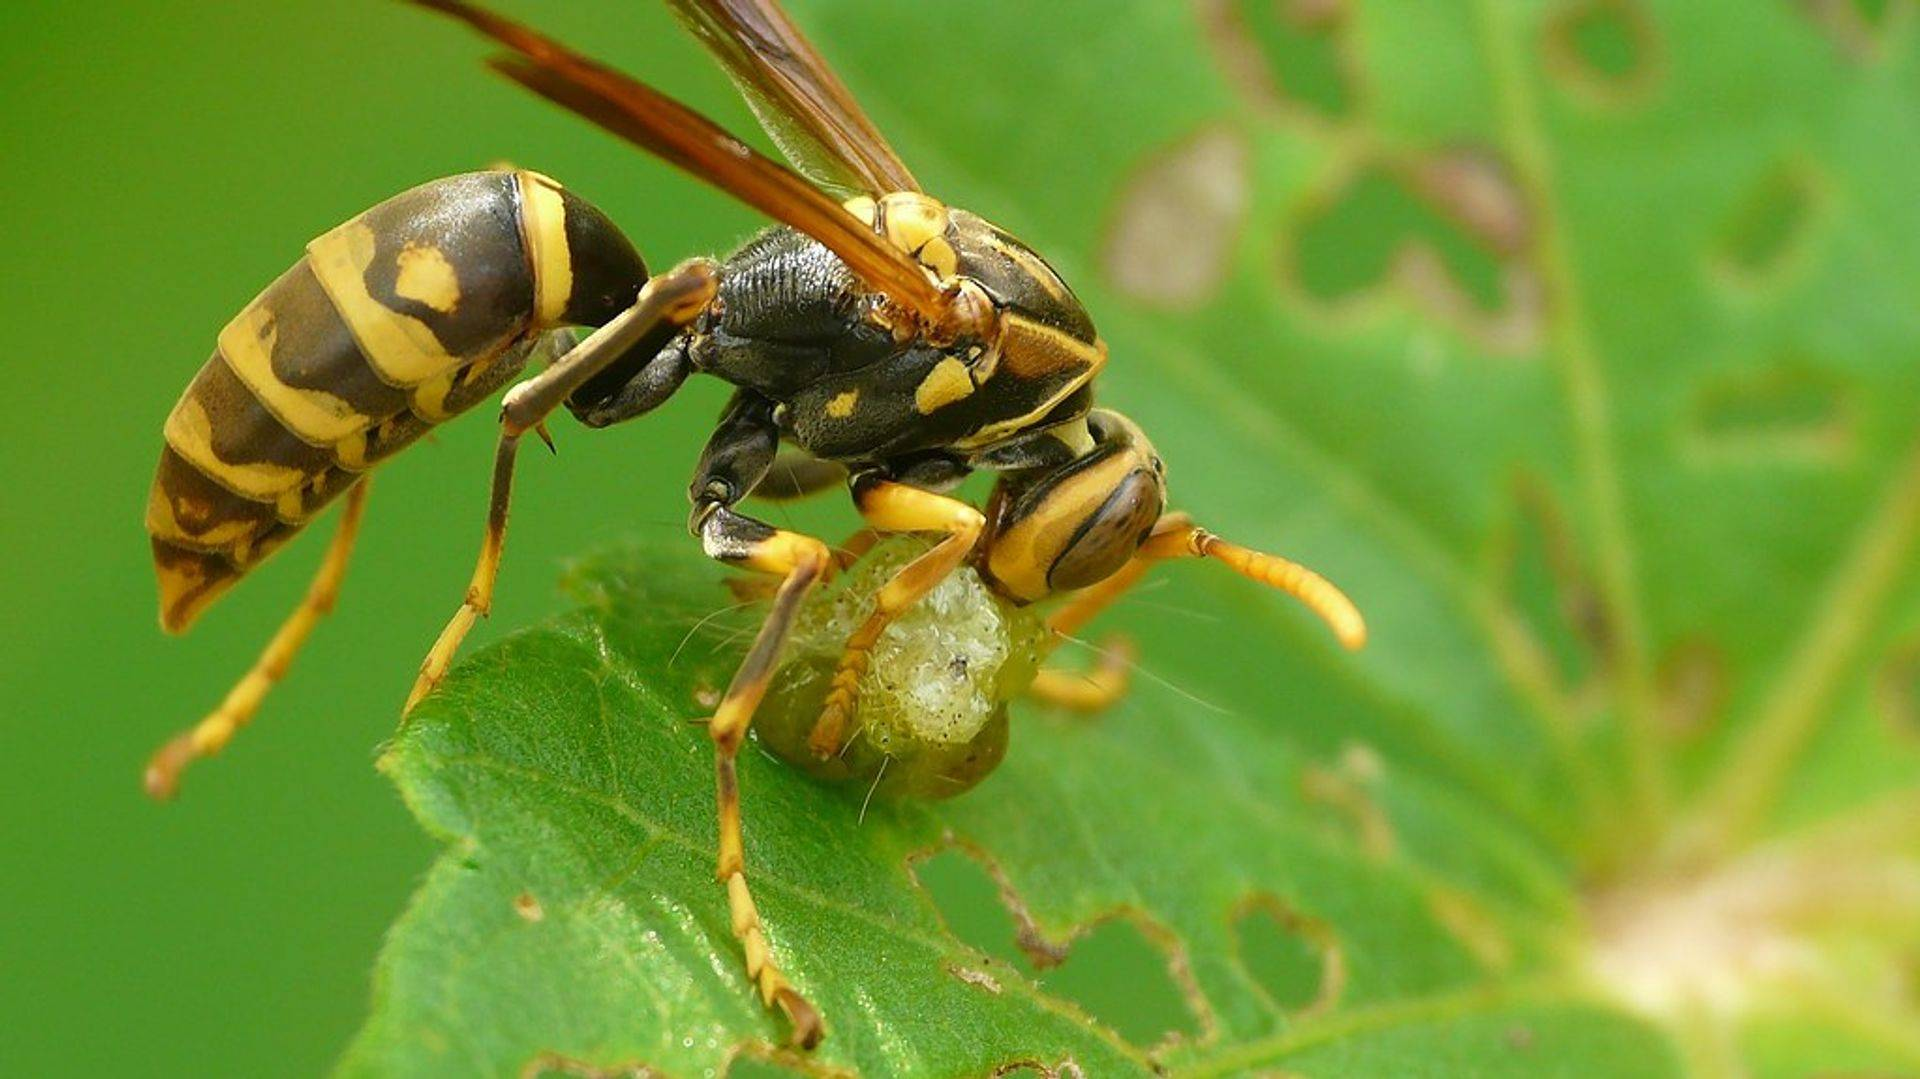 A wasp with prey